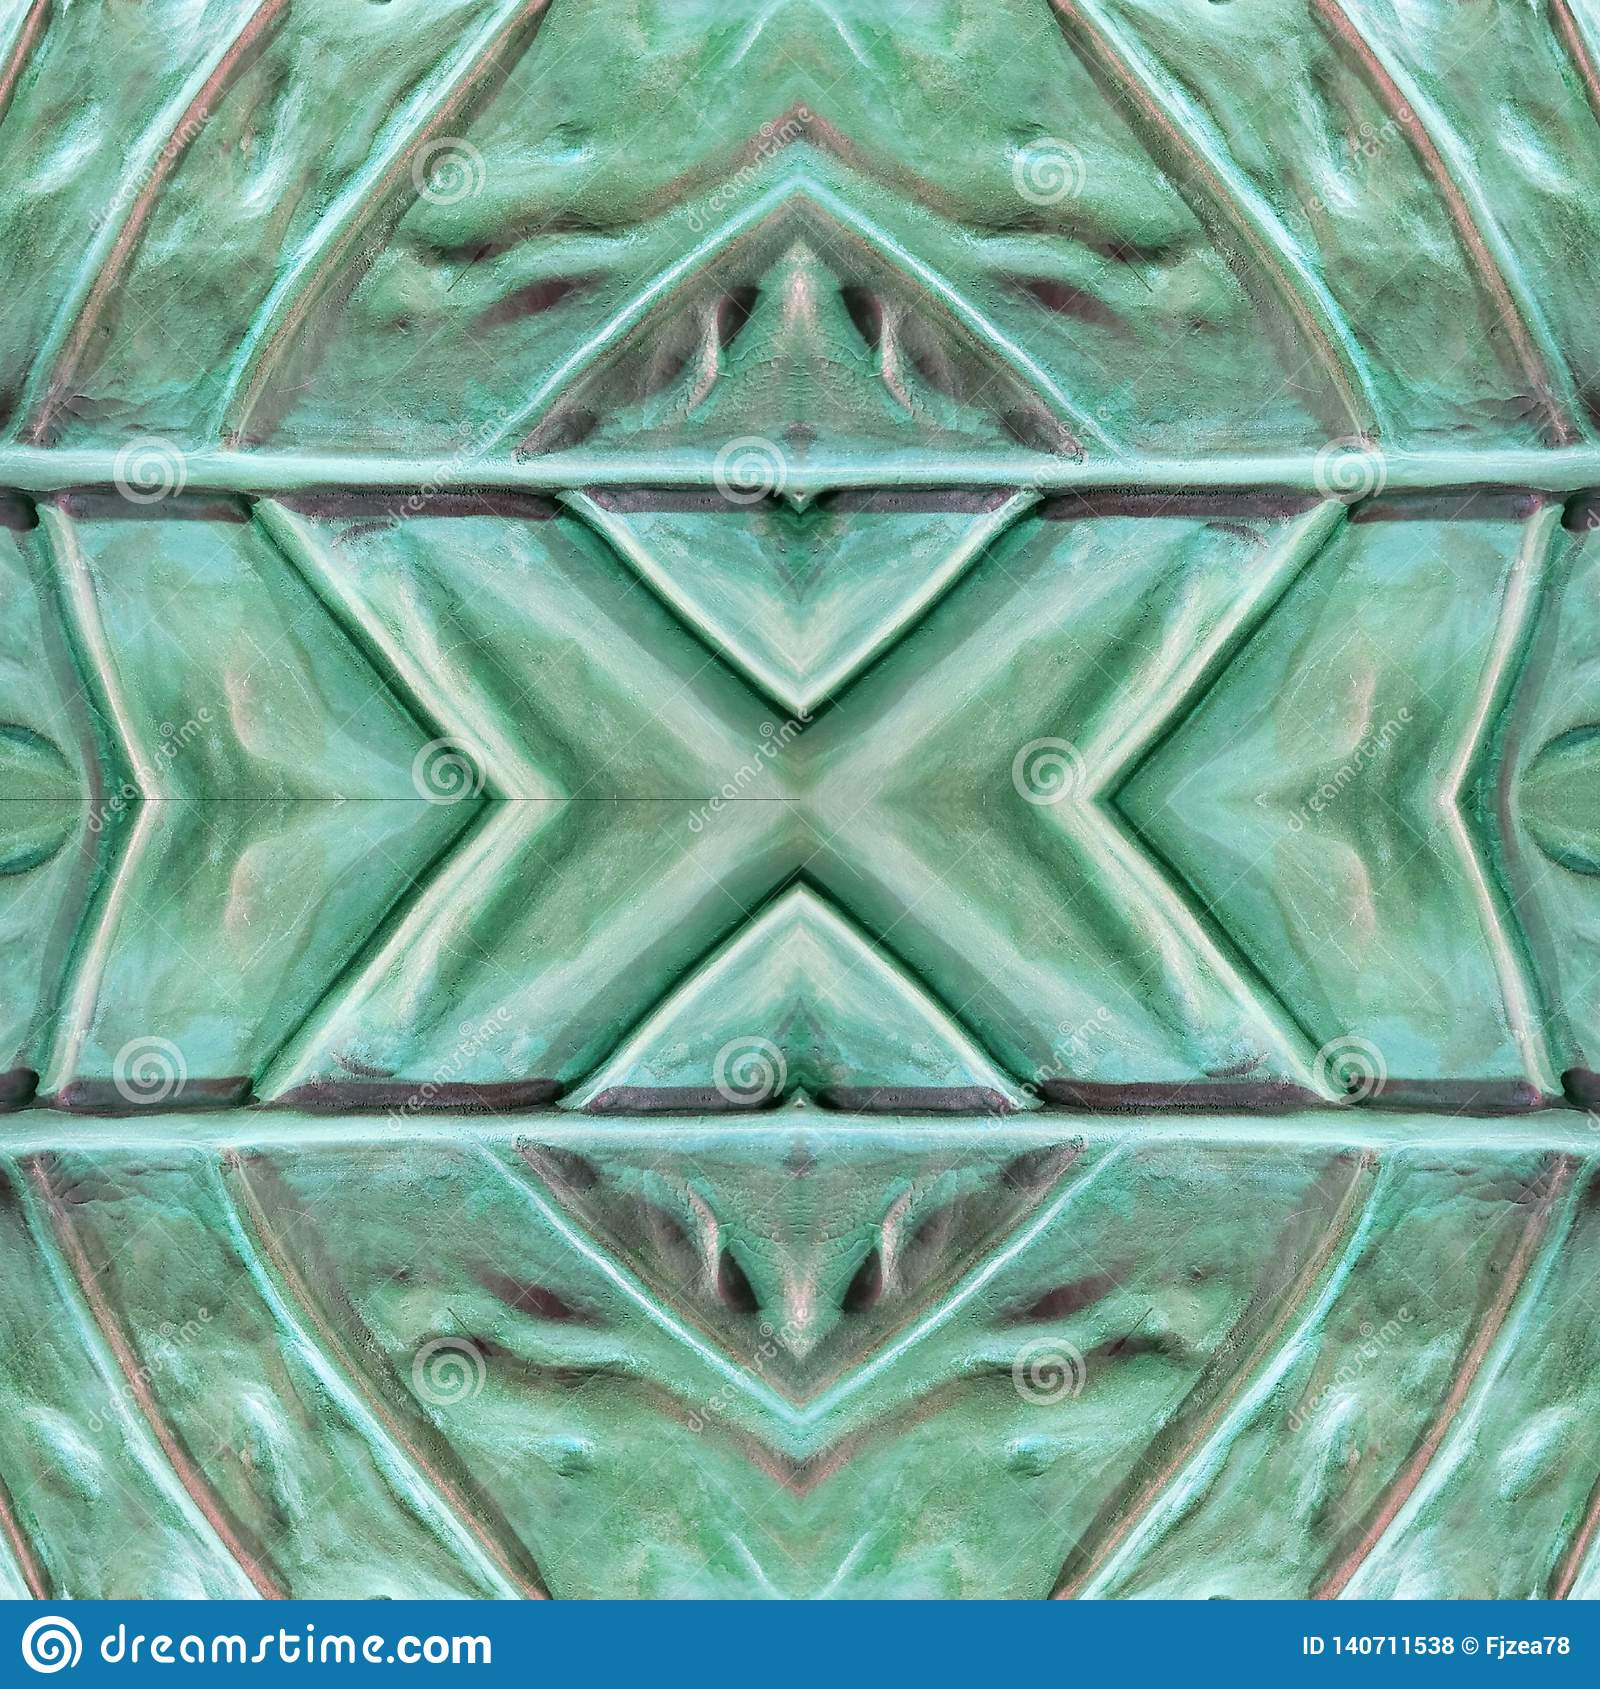 abstract design with stone and sand material in aquamarine and gray colors, background and texture